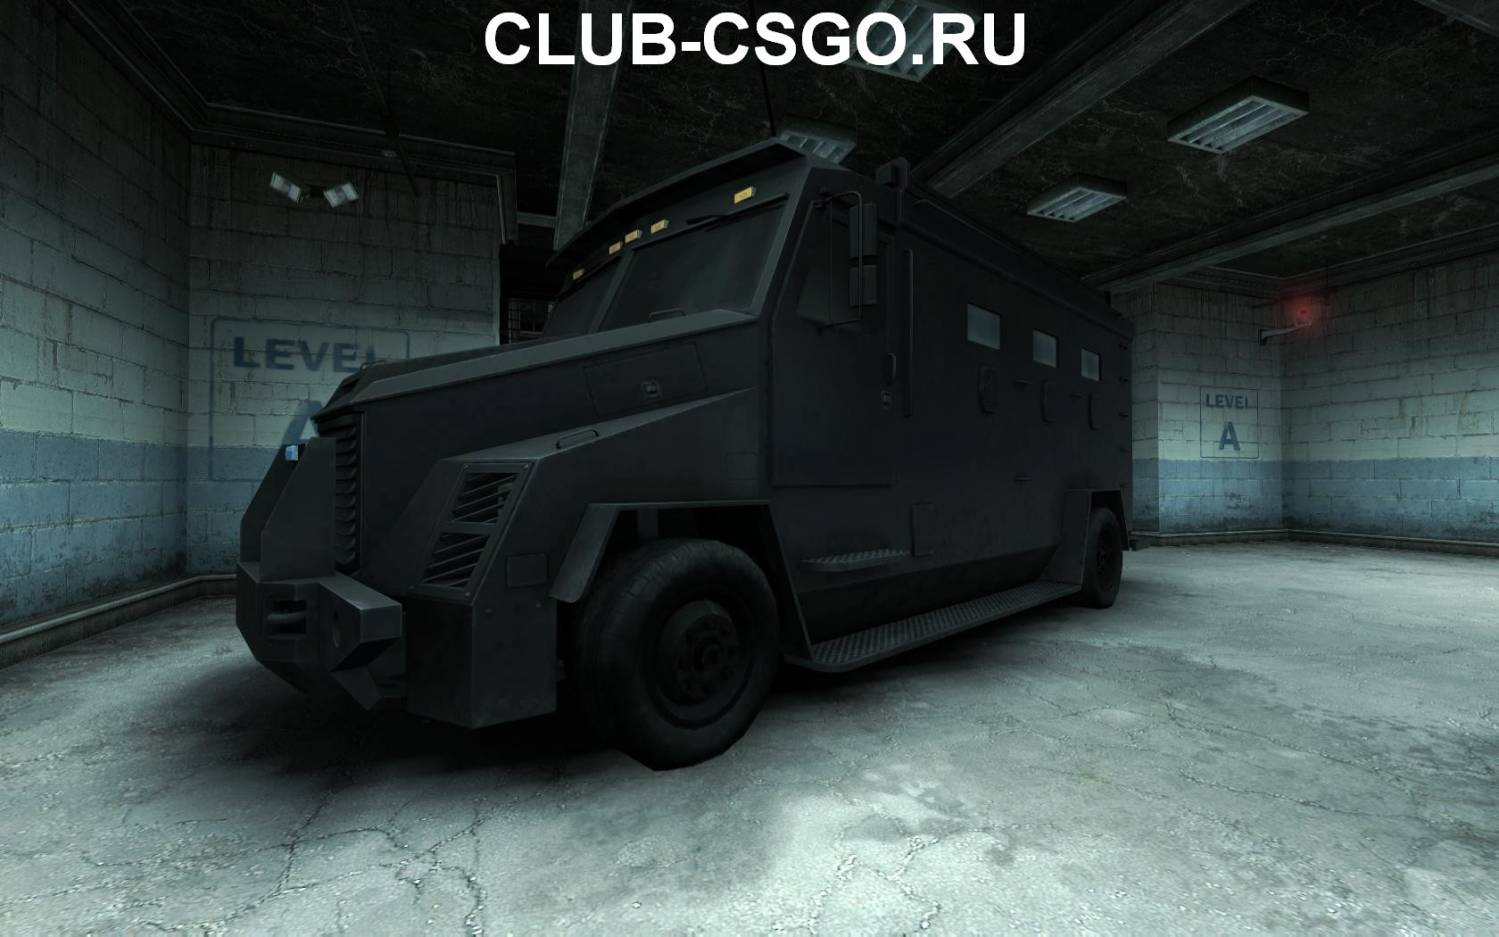 Скачать Black Enforcement Van